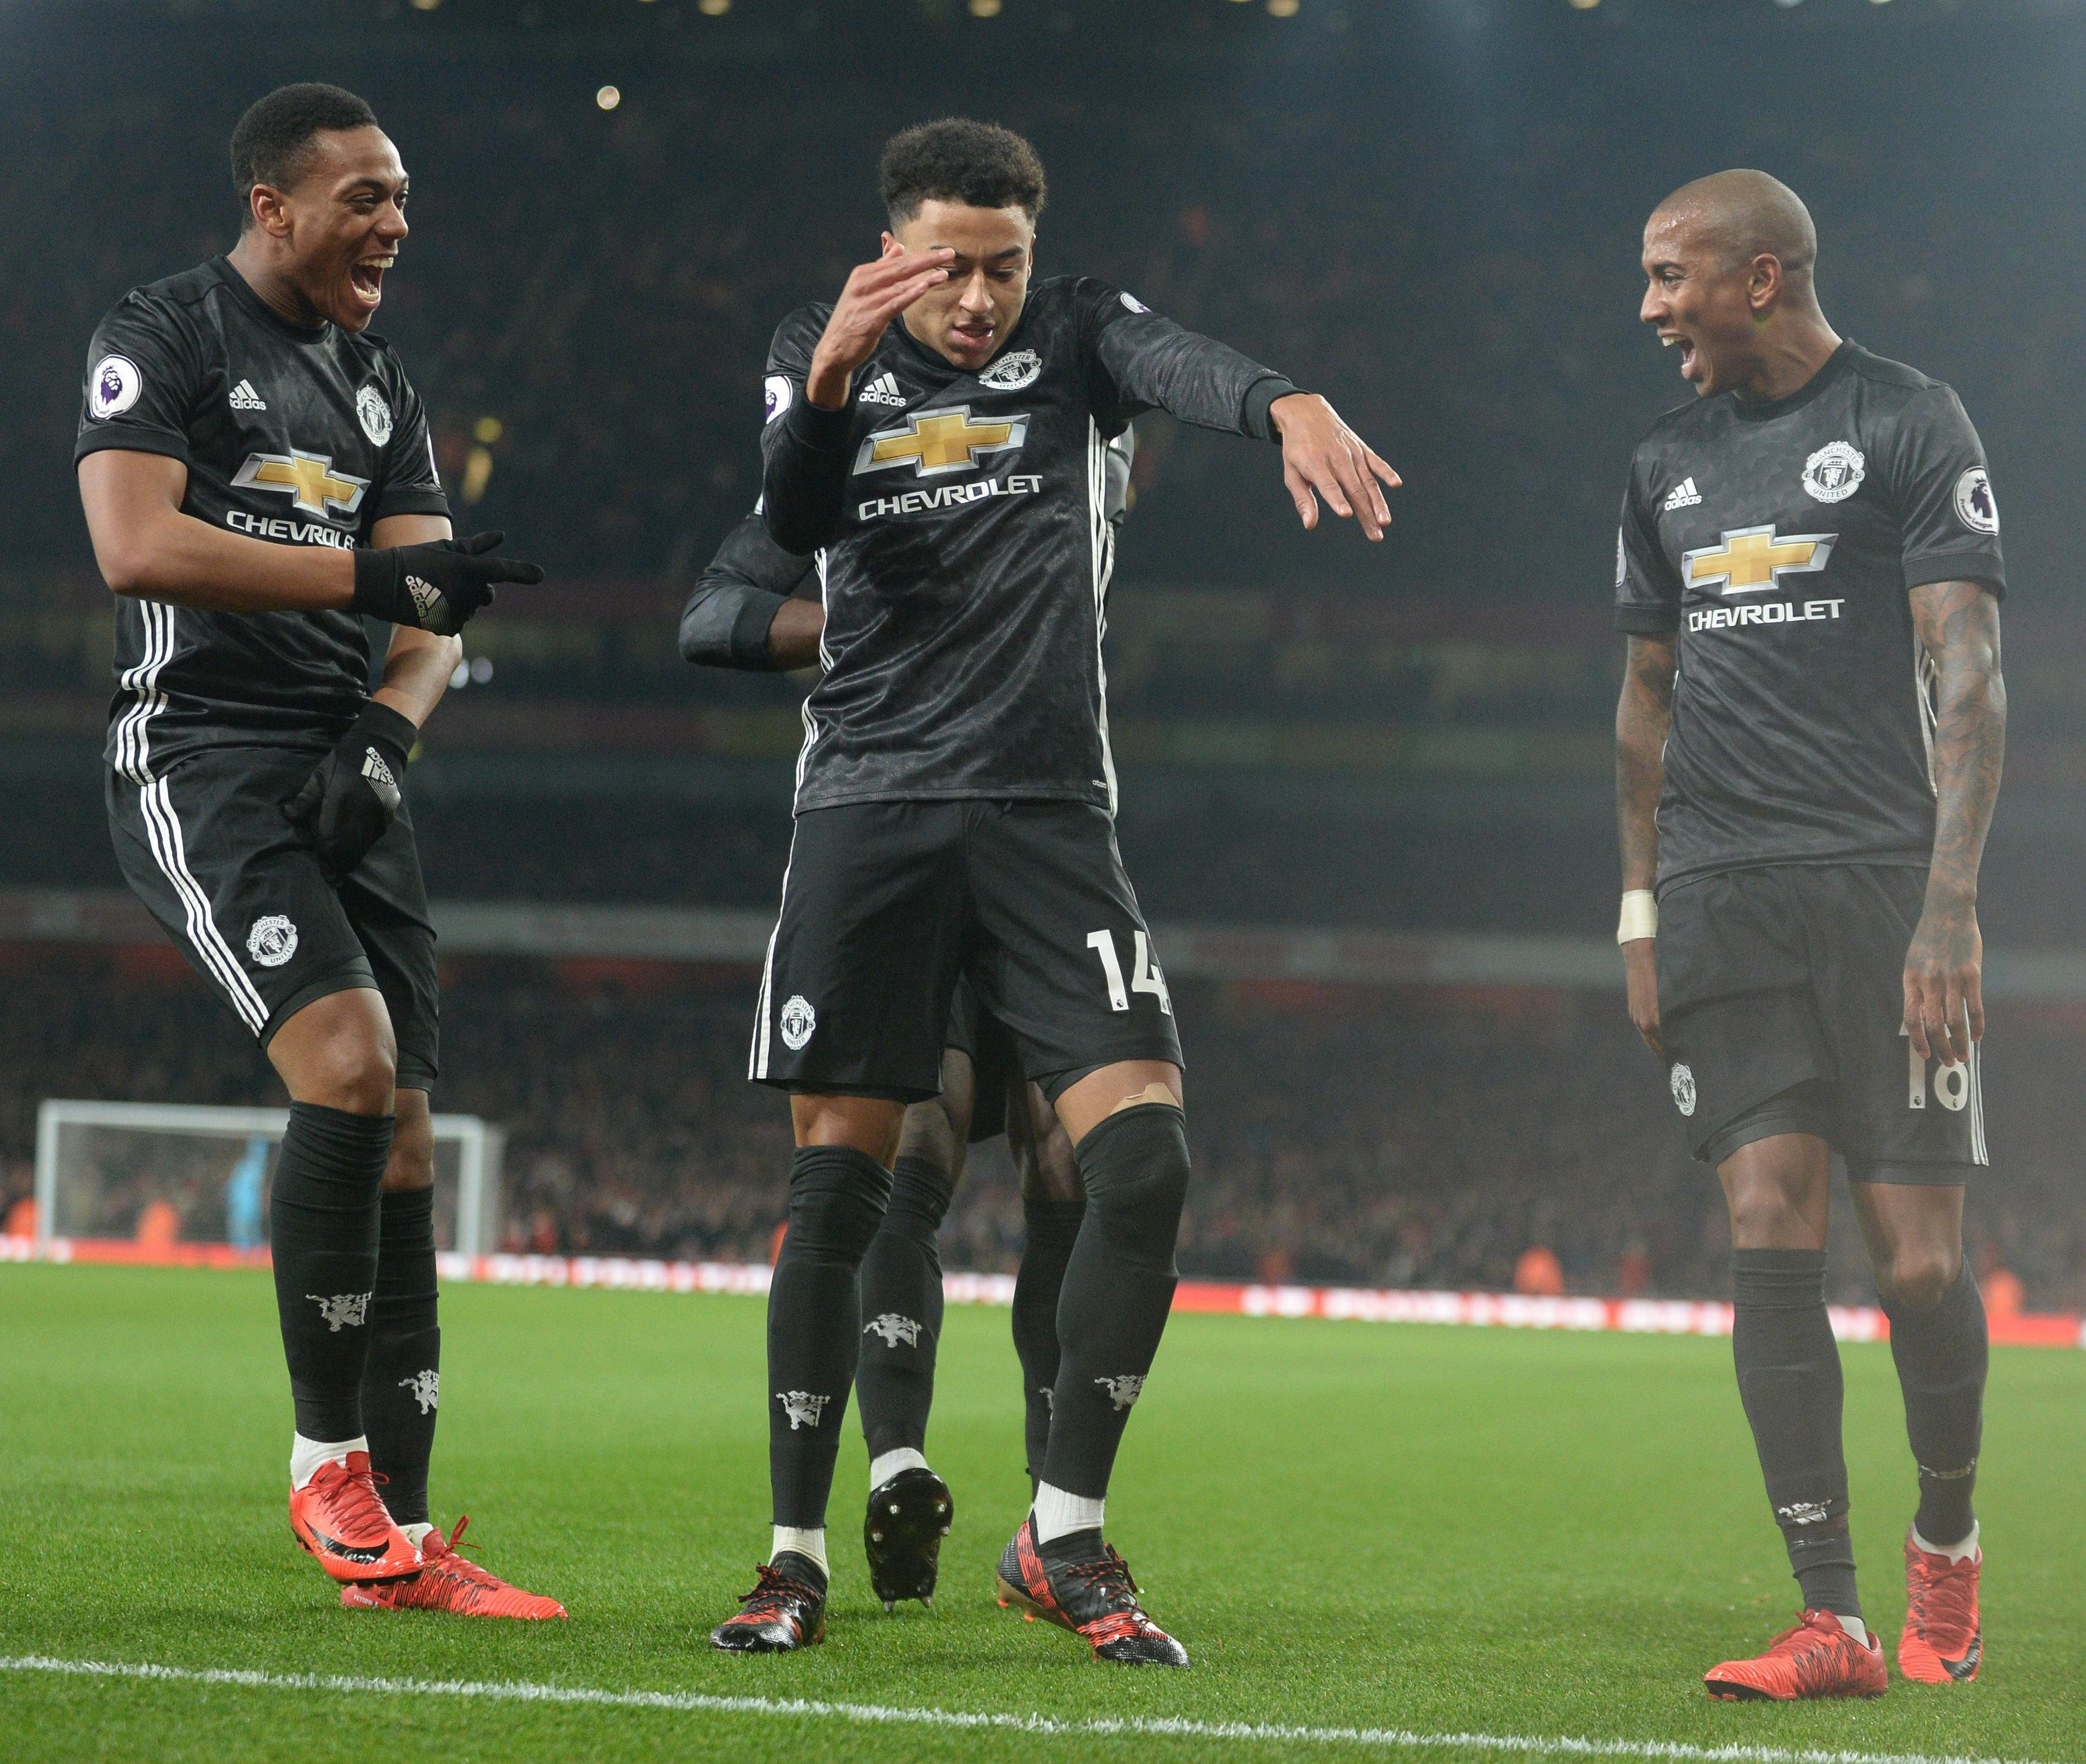 Jesse Lingard and Piers Morgan in Twitter war over Alexis Sanchez     Lingard celebrates with  Milly Rock  dance after scoring against Arsenal